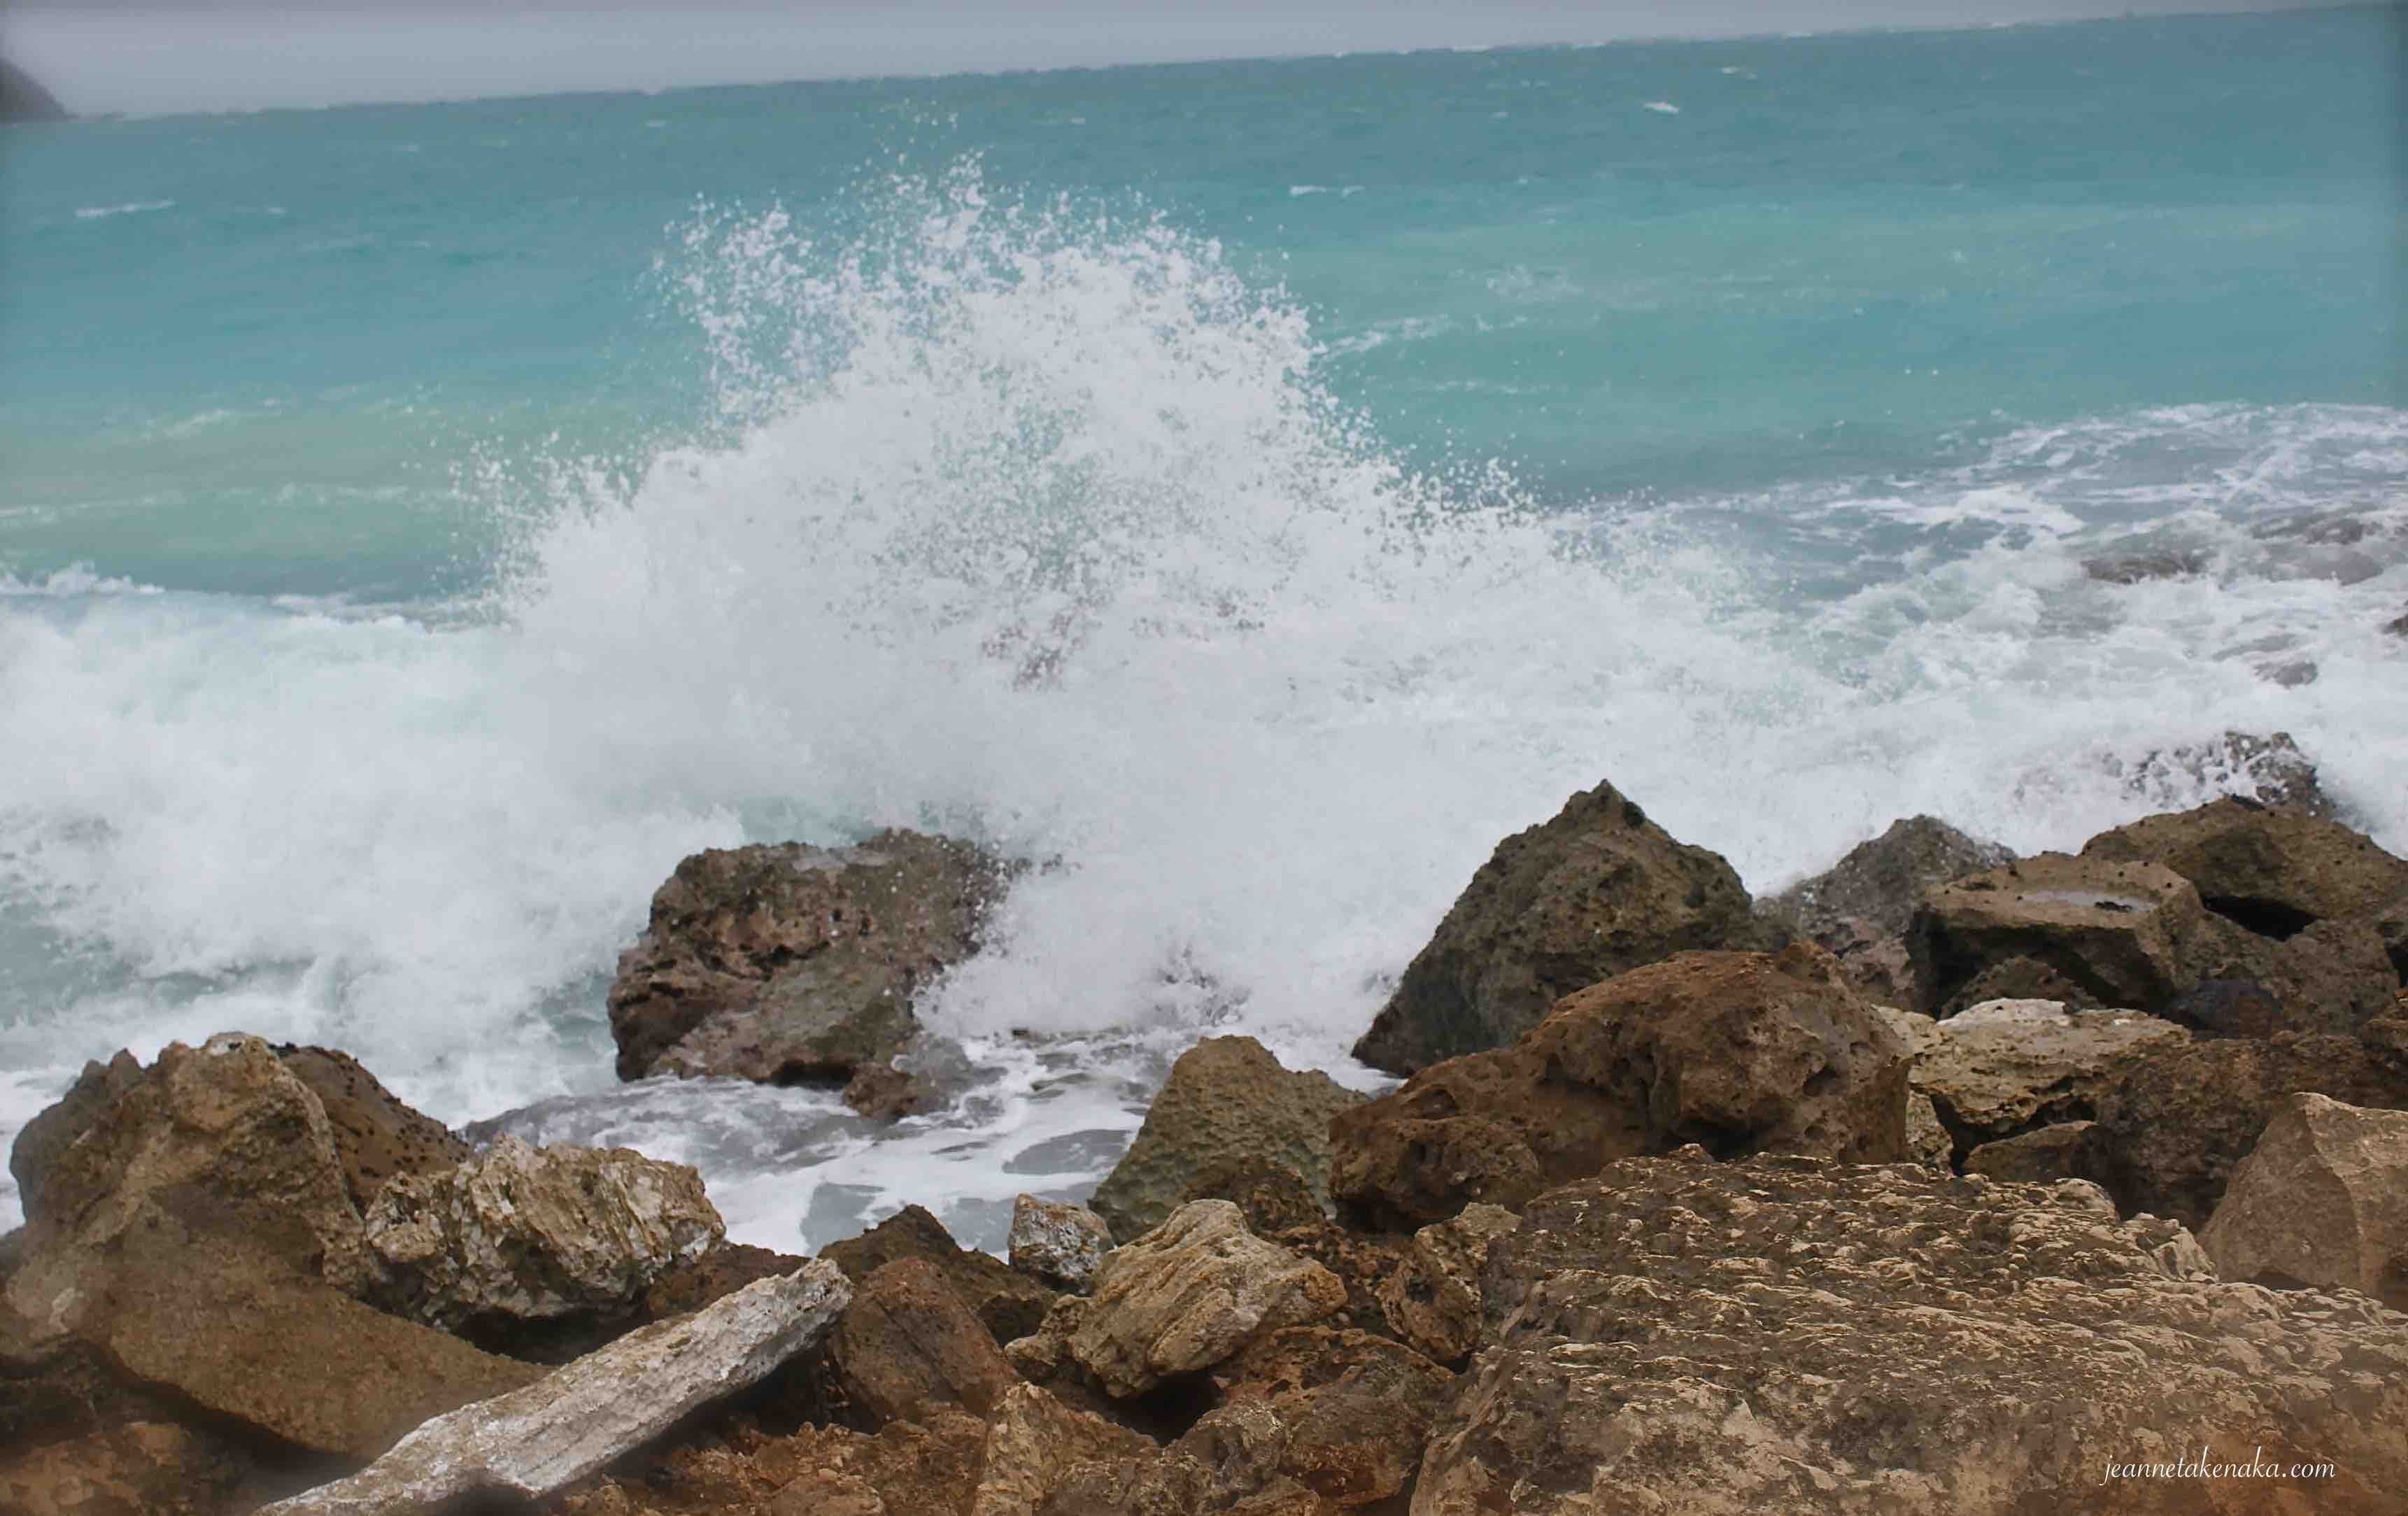 A wave crashing into rocks reminds us how we feel internally when our hearts cling to things it shouldn't